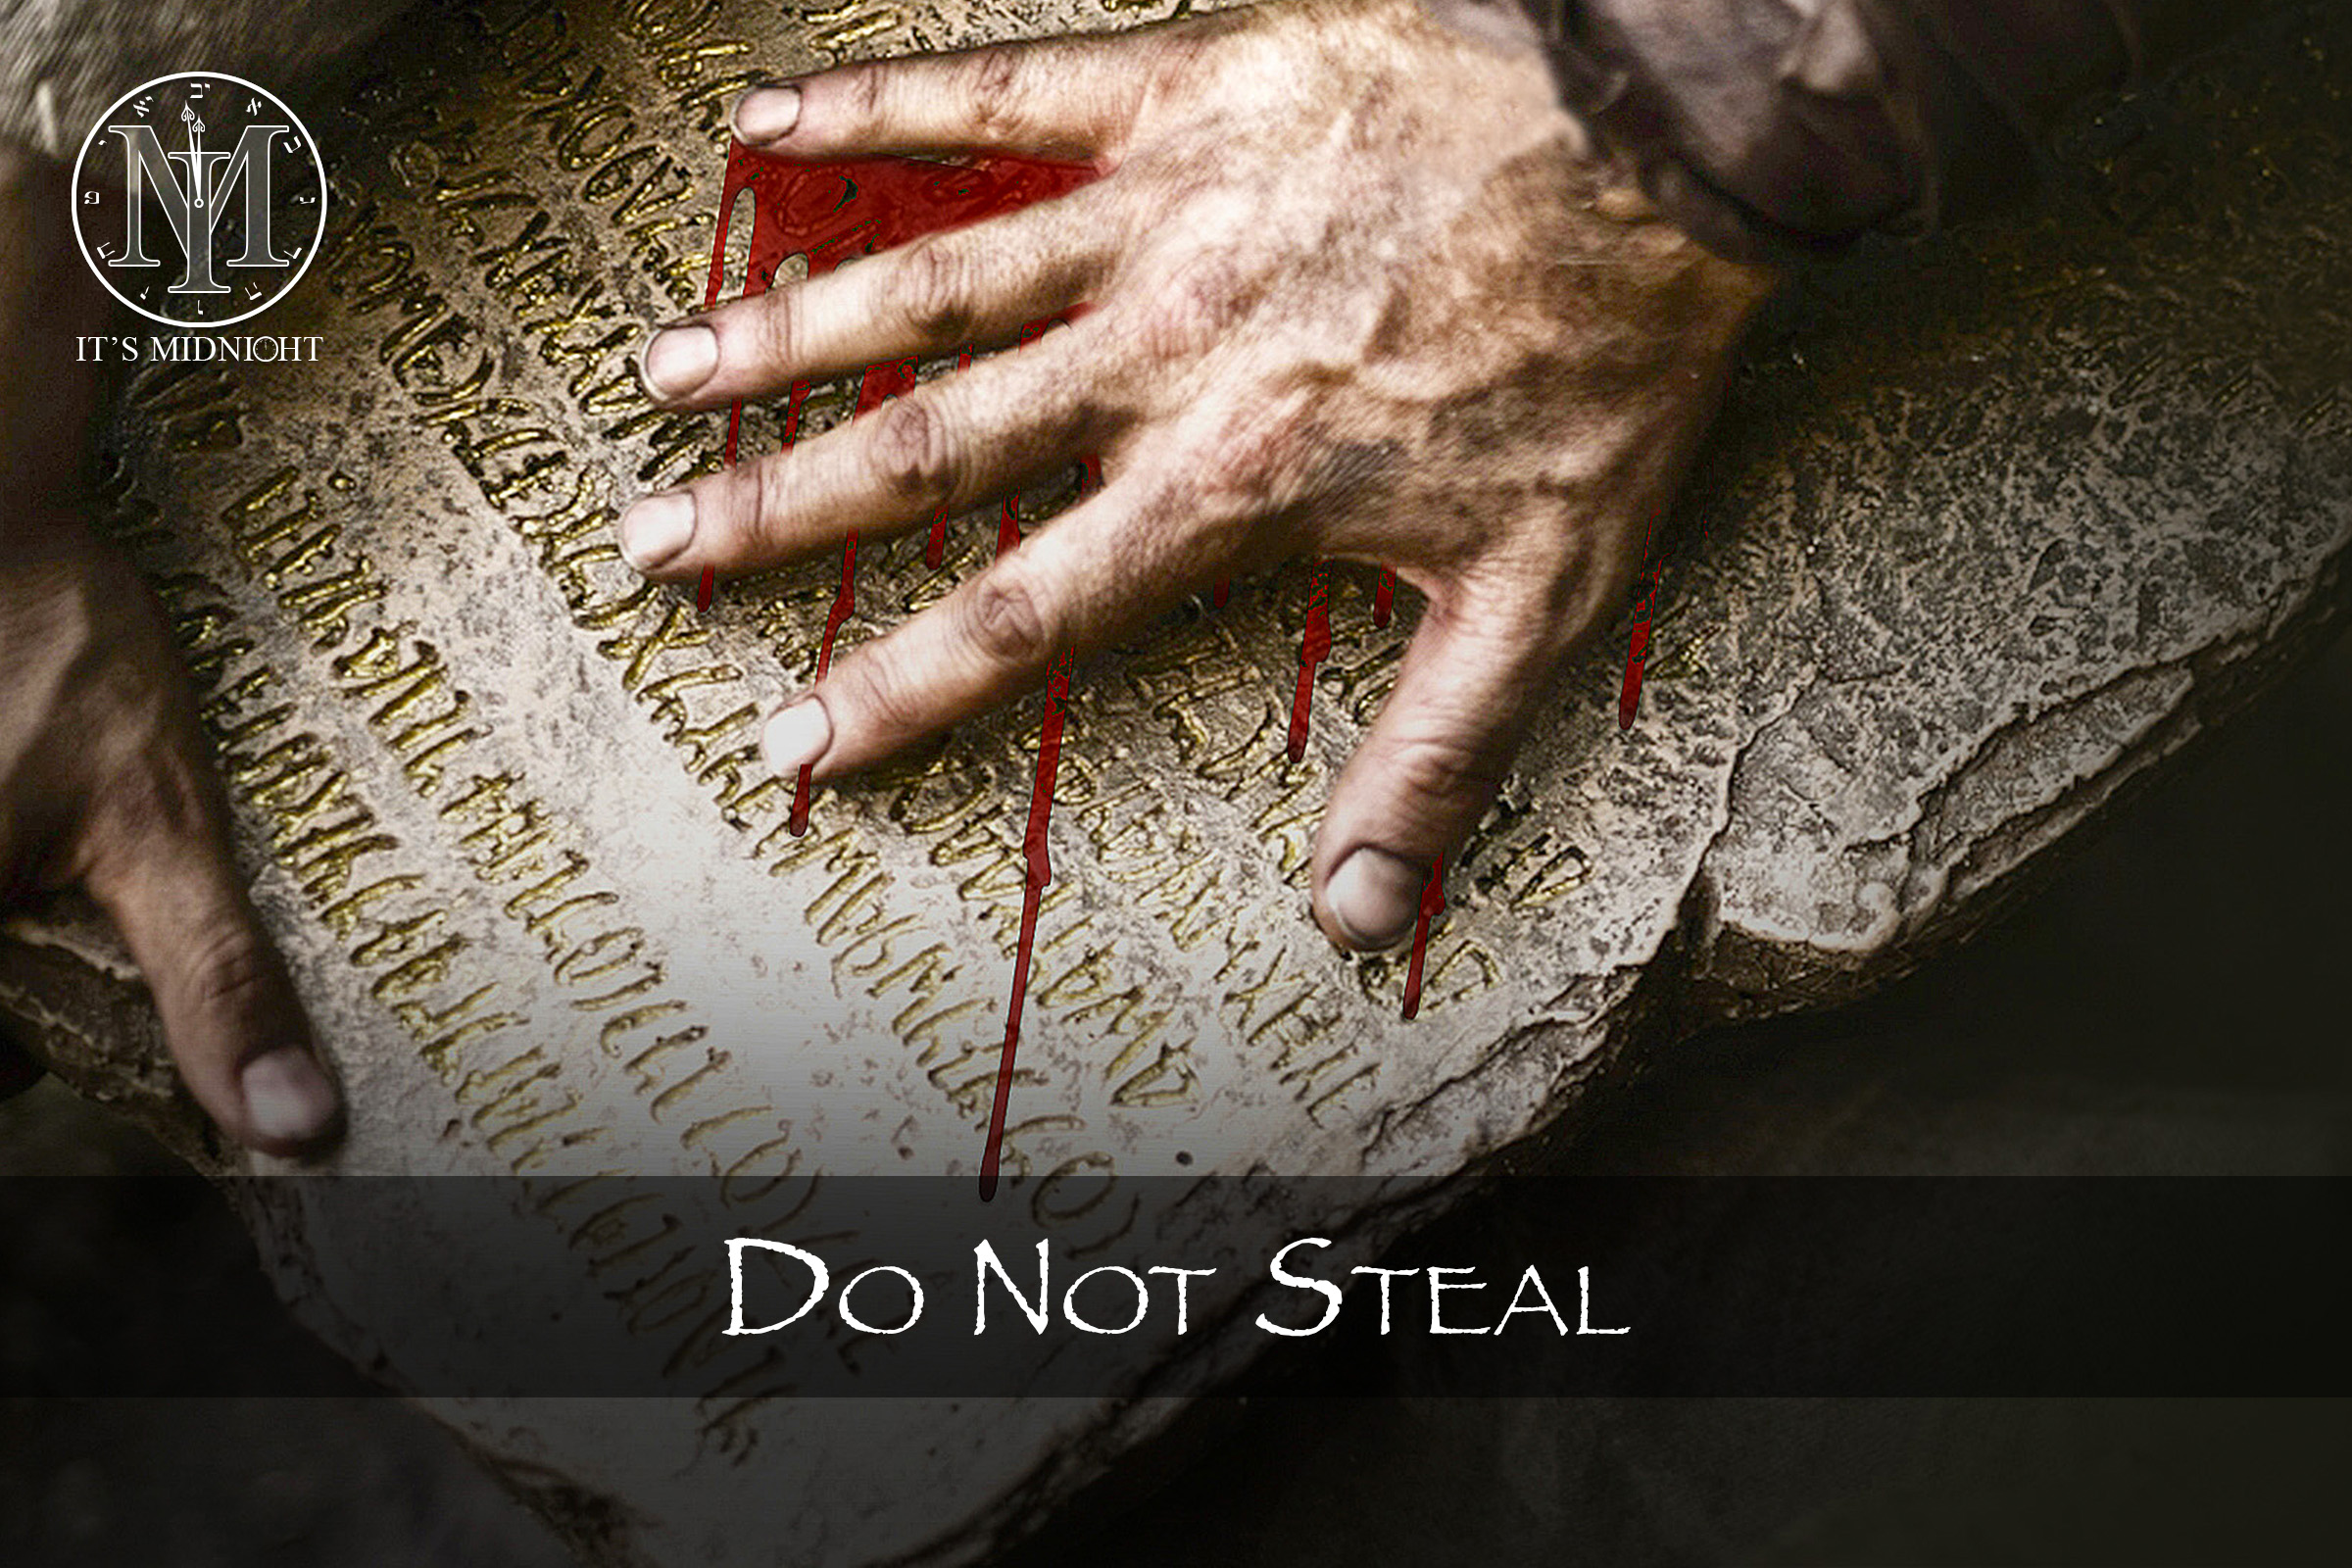 8th Commandment: Do Not Steal